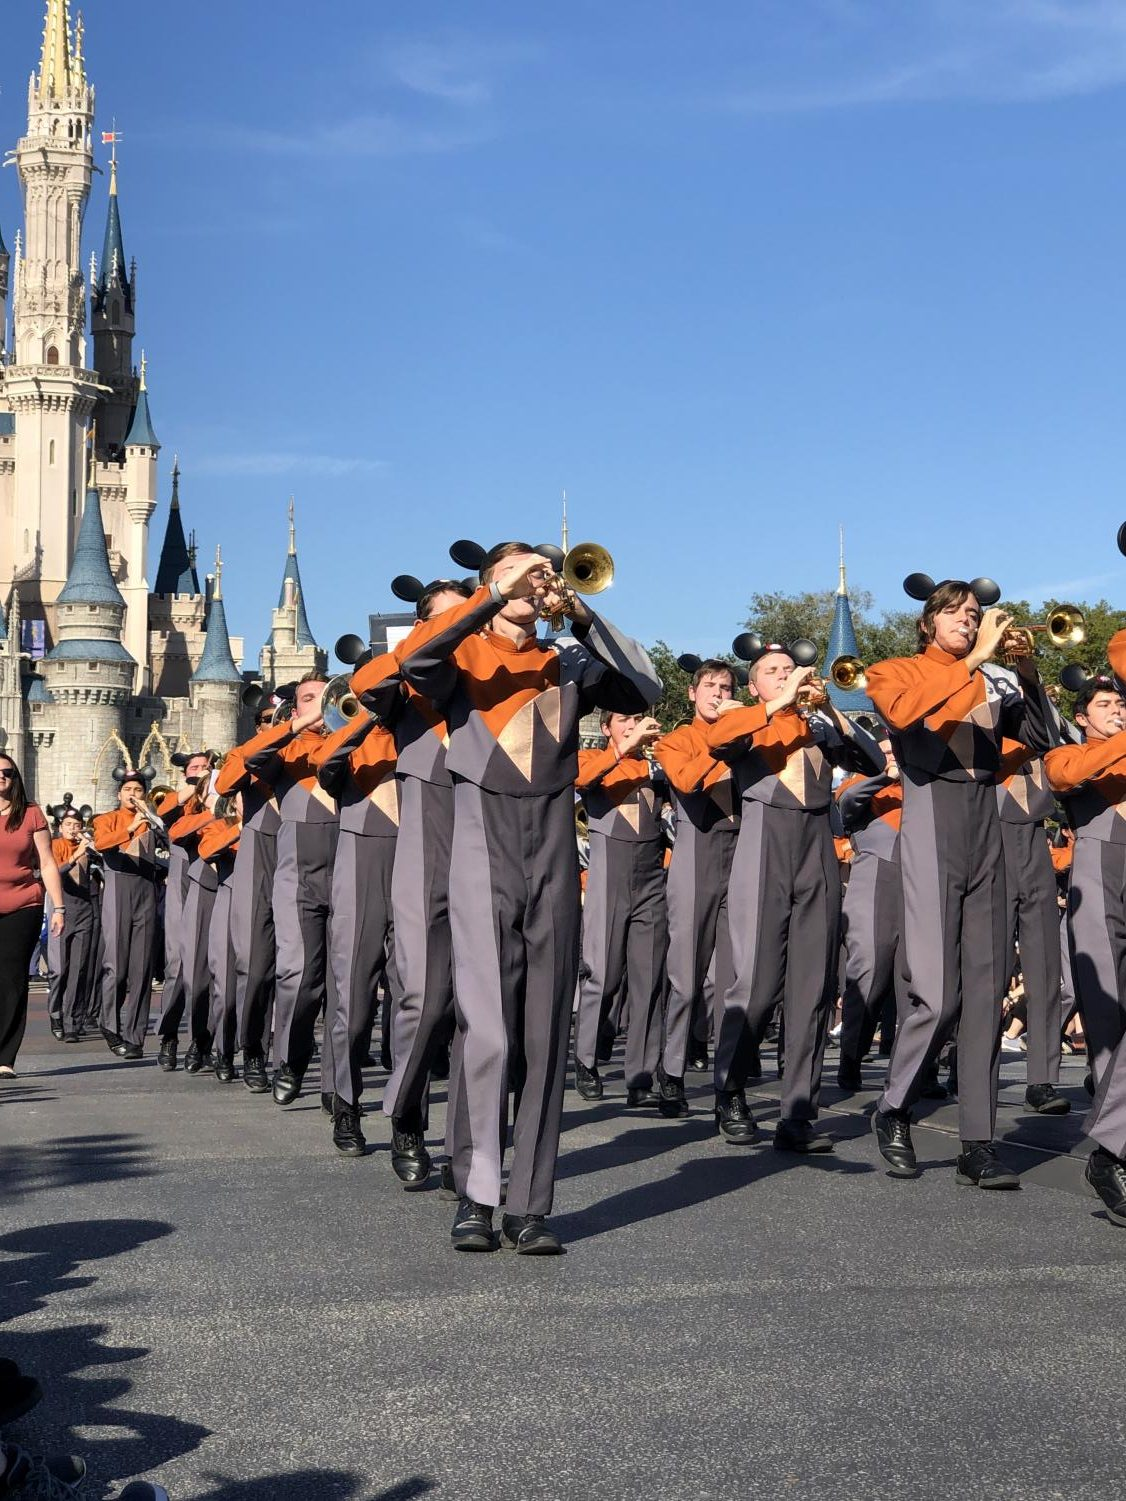 The+trumpet+section+leads+the+parade.